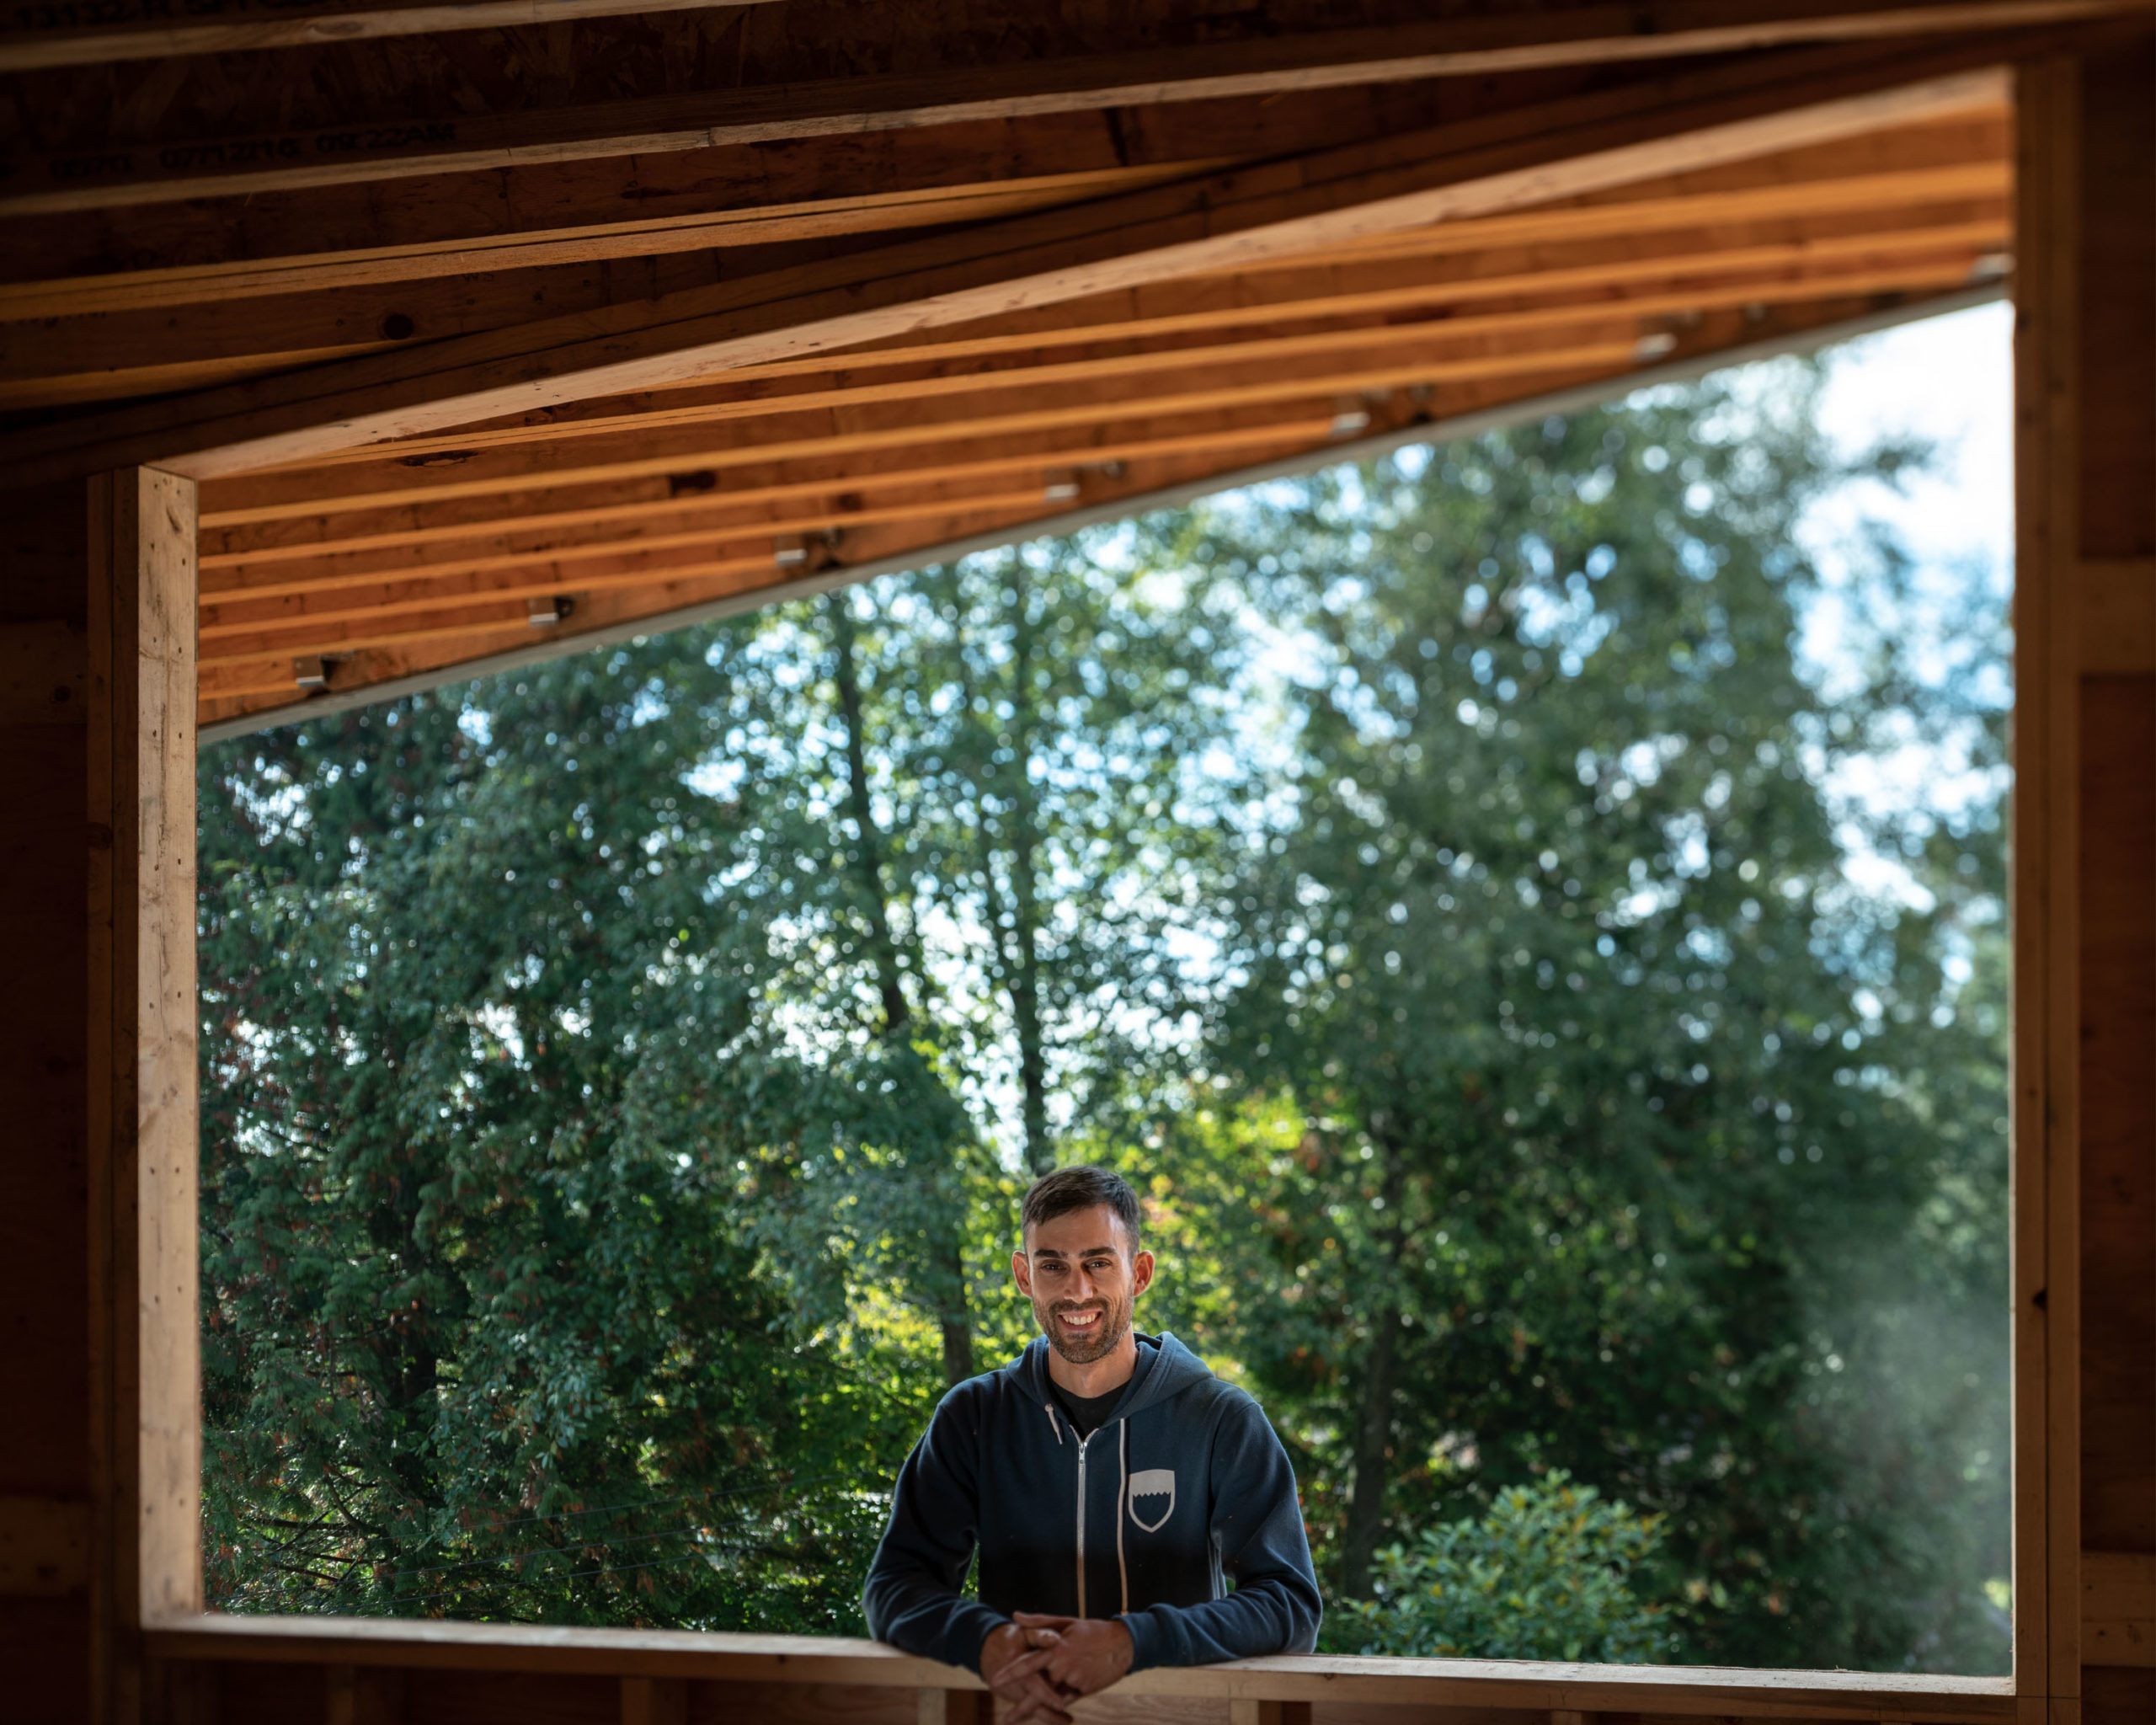 A carpenter stands in a framed-inn picture window with trees behind him.